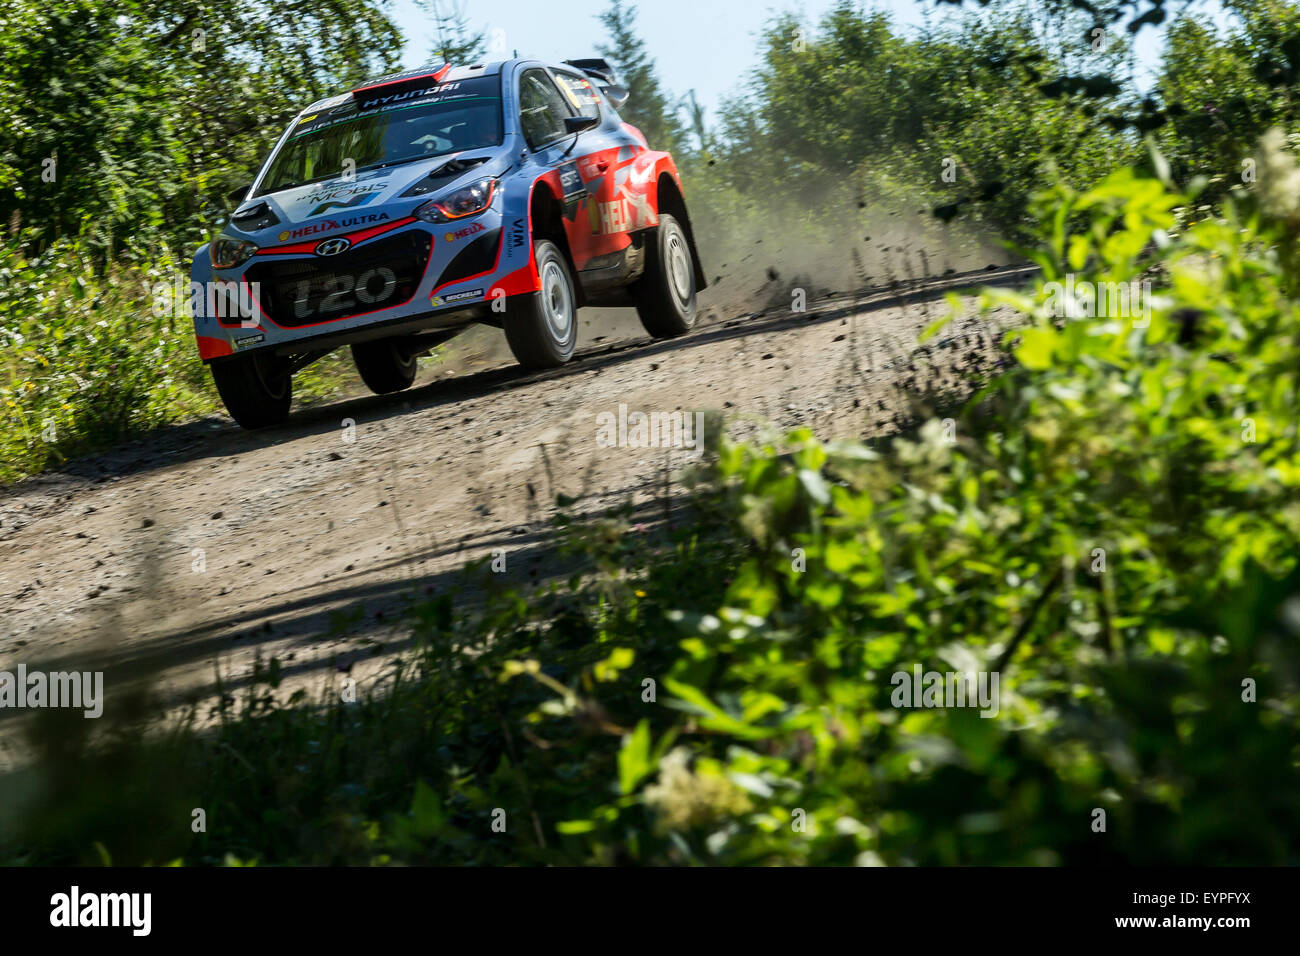 Rally Motor Credit >> Finland. 02nd Aug, 2015. World Rally Championships (WRC) of Finland Stock Photo, Royalty Free ...